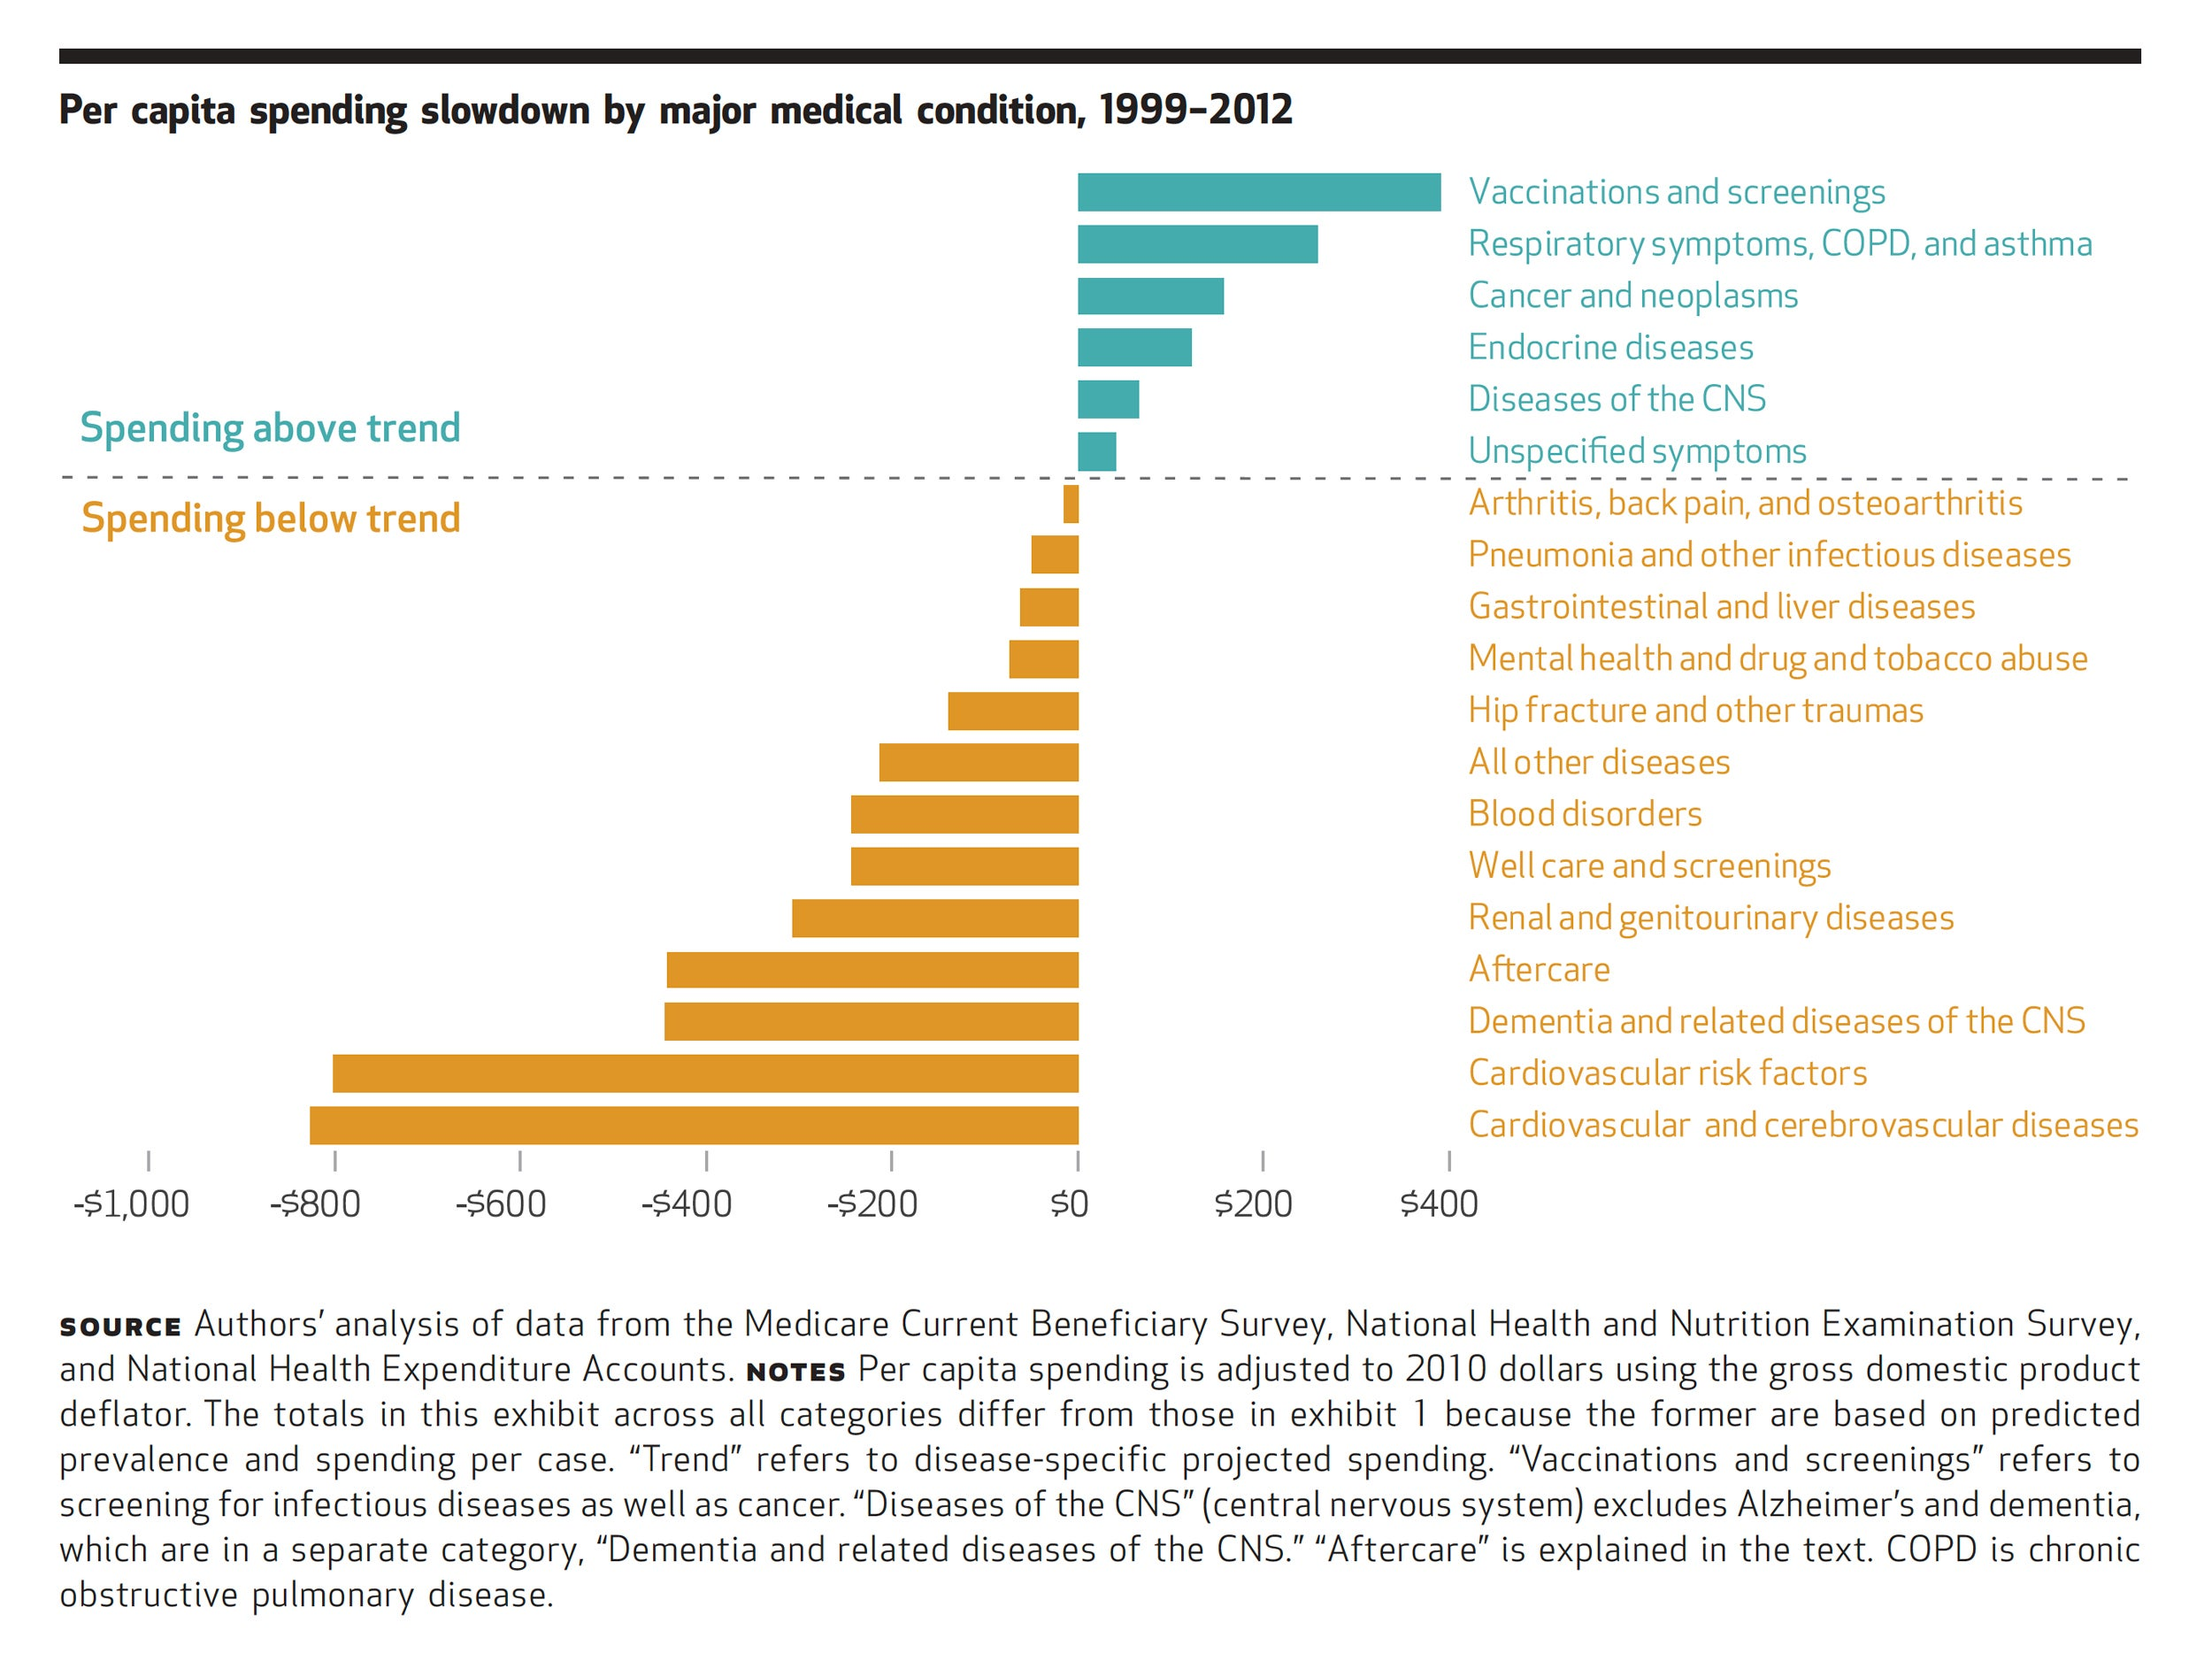 Per Capita Spending Slowdown by Major Medical Condition 1992-2012